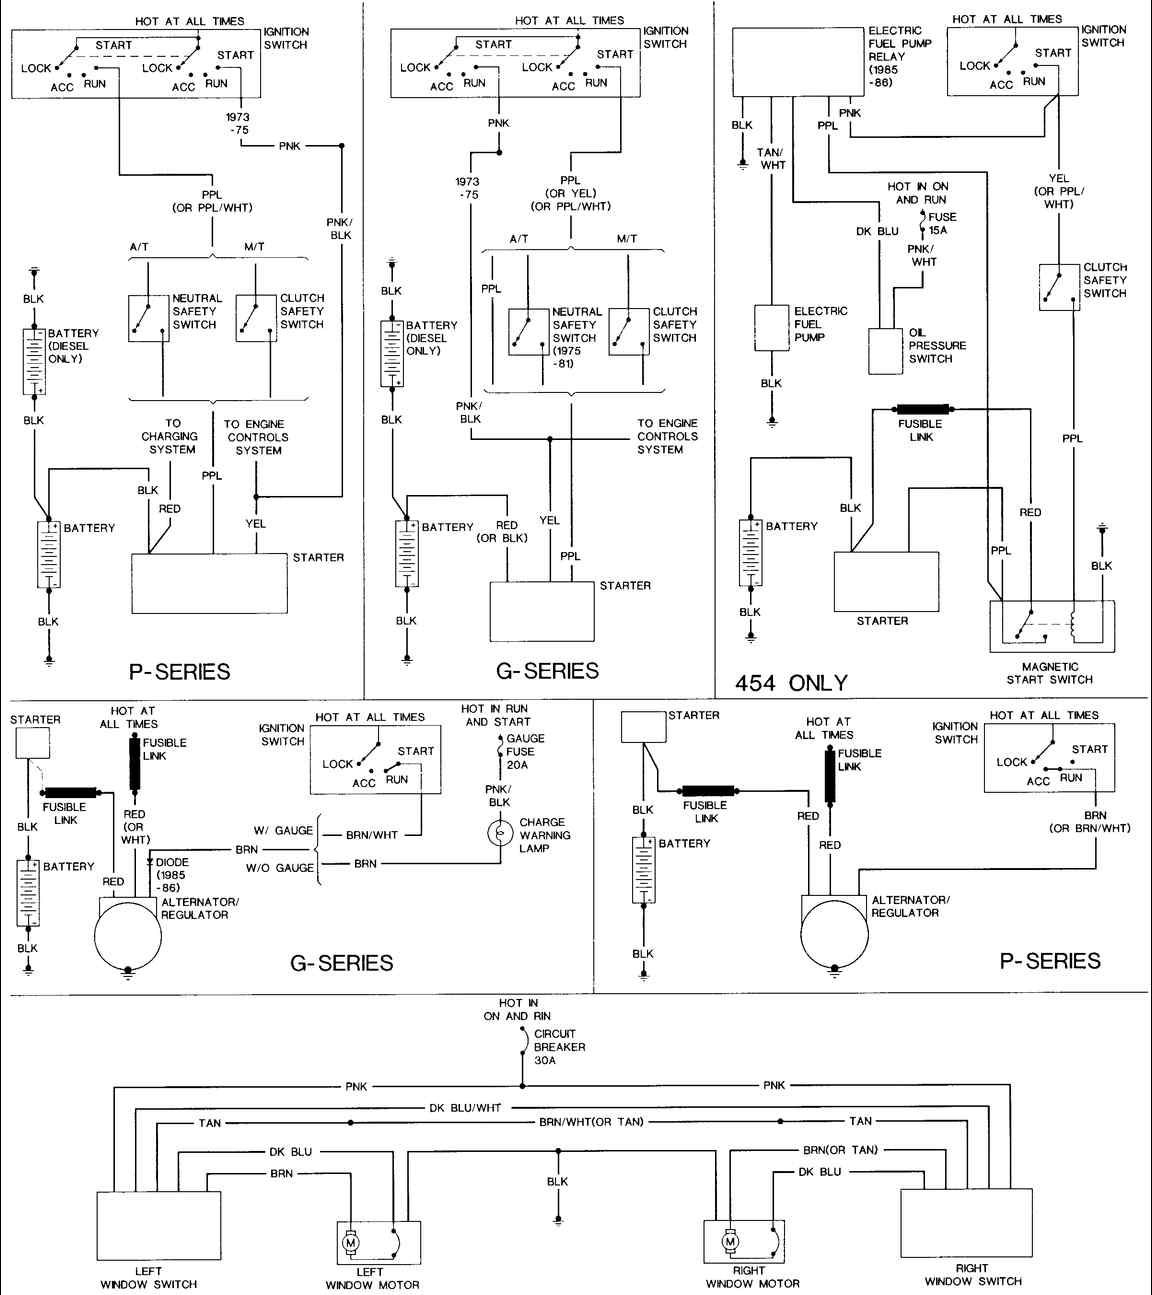 0c73623a181dc376dbb4777e2029d285 85 chevy truck wiring diagram 85 chevy van the steering column 1984 chevy c10 wiring diagram at gsmx.co